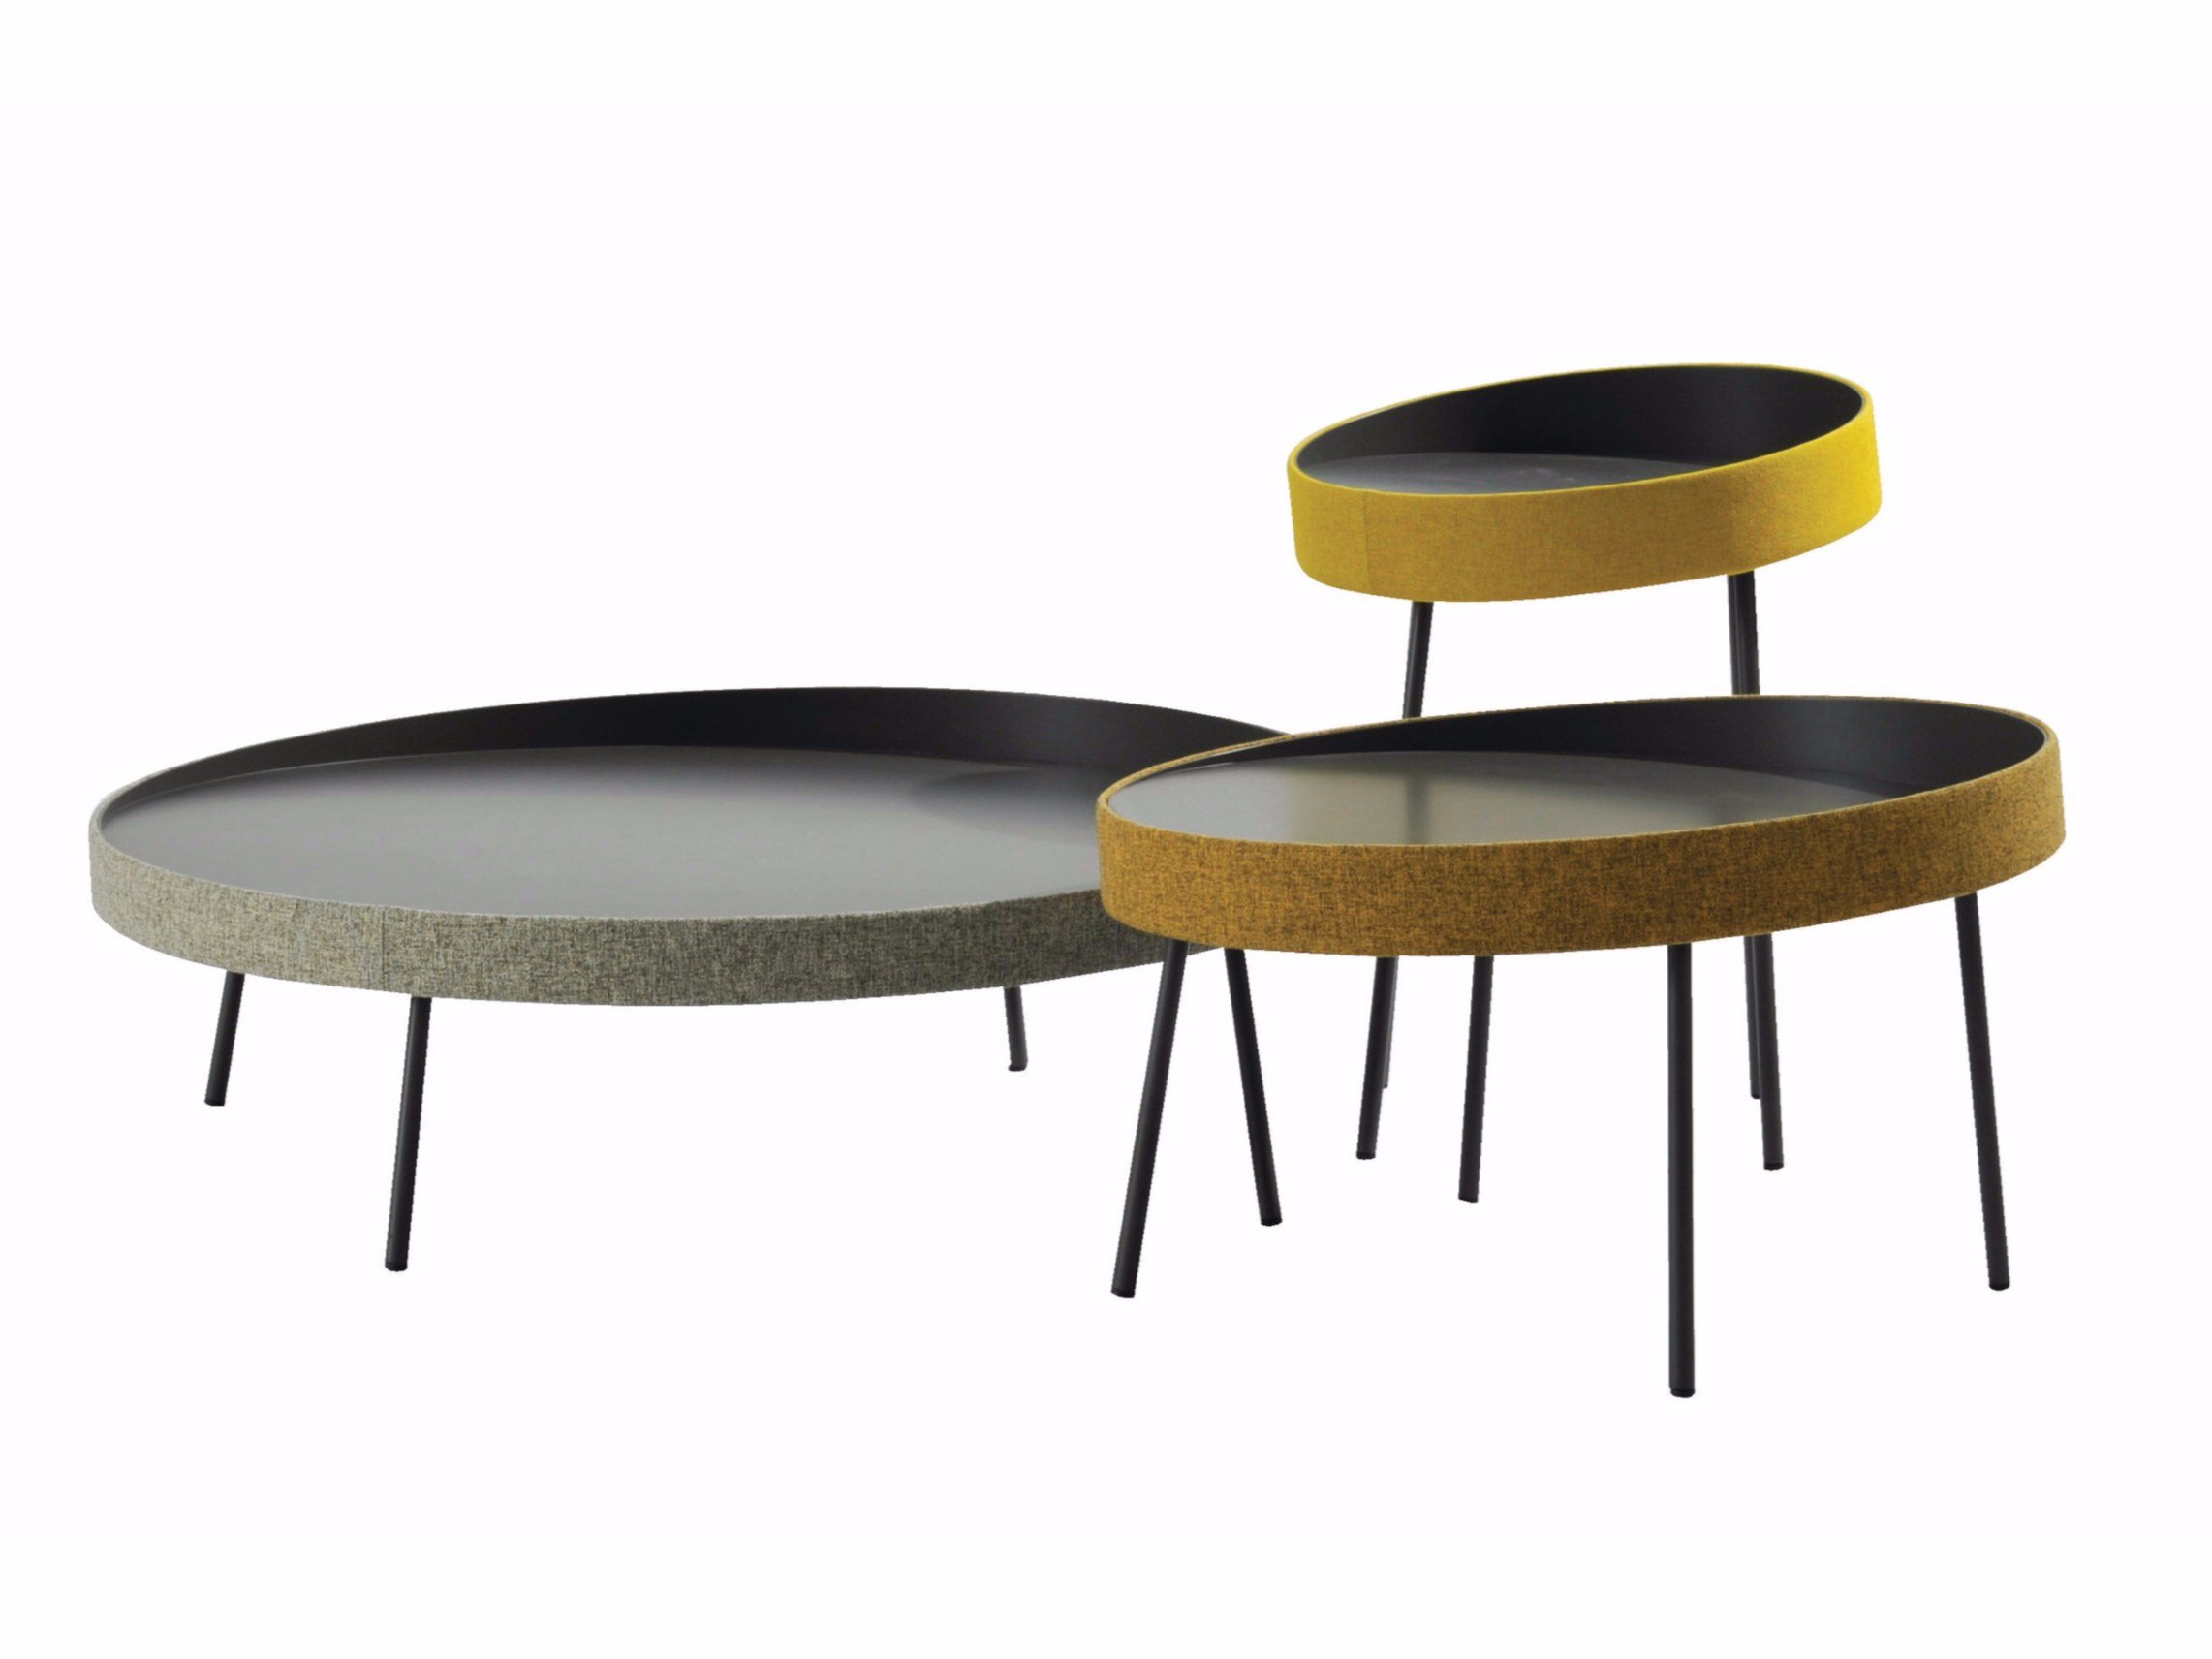 Coffee table CARAMBOLE By ROCHE BOBOIS design Sacha Lakic